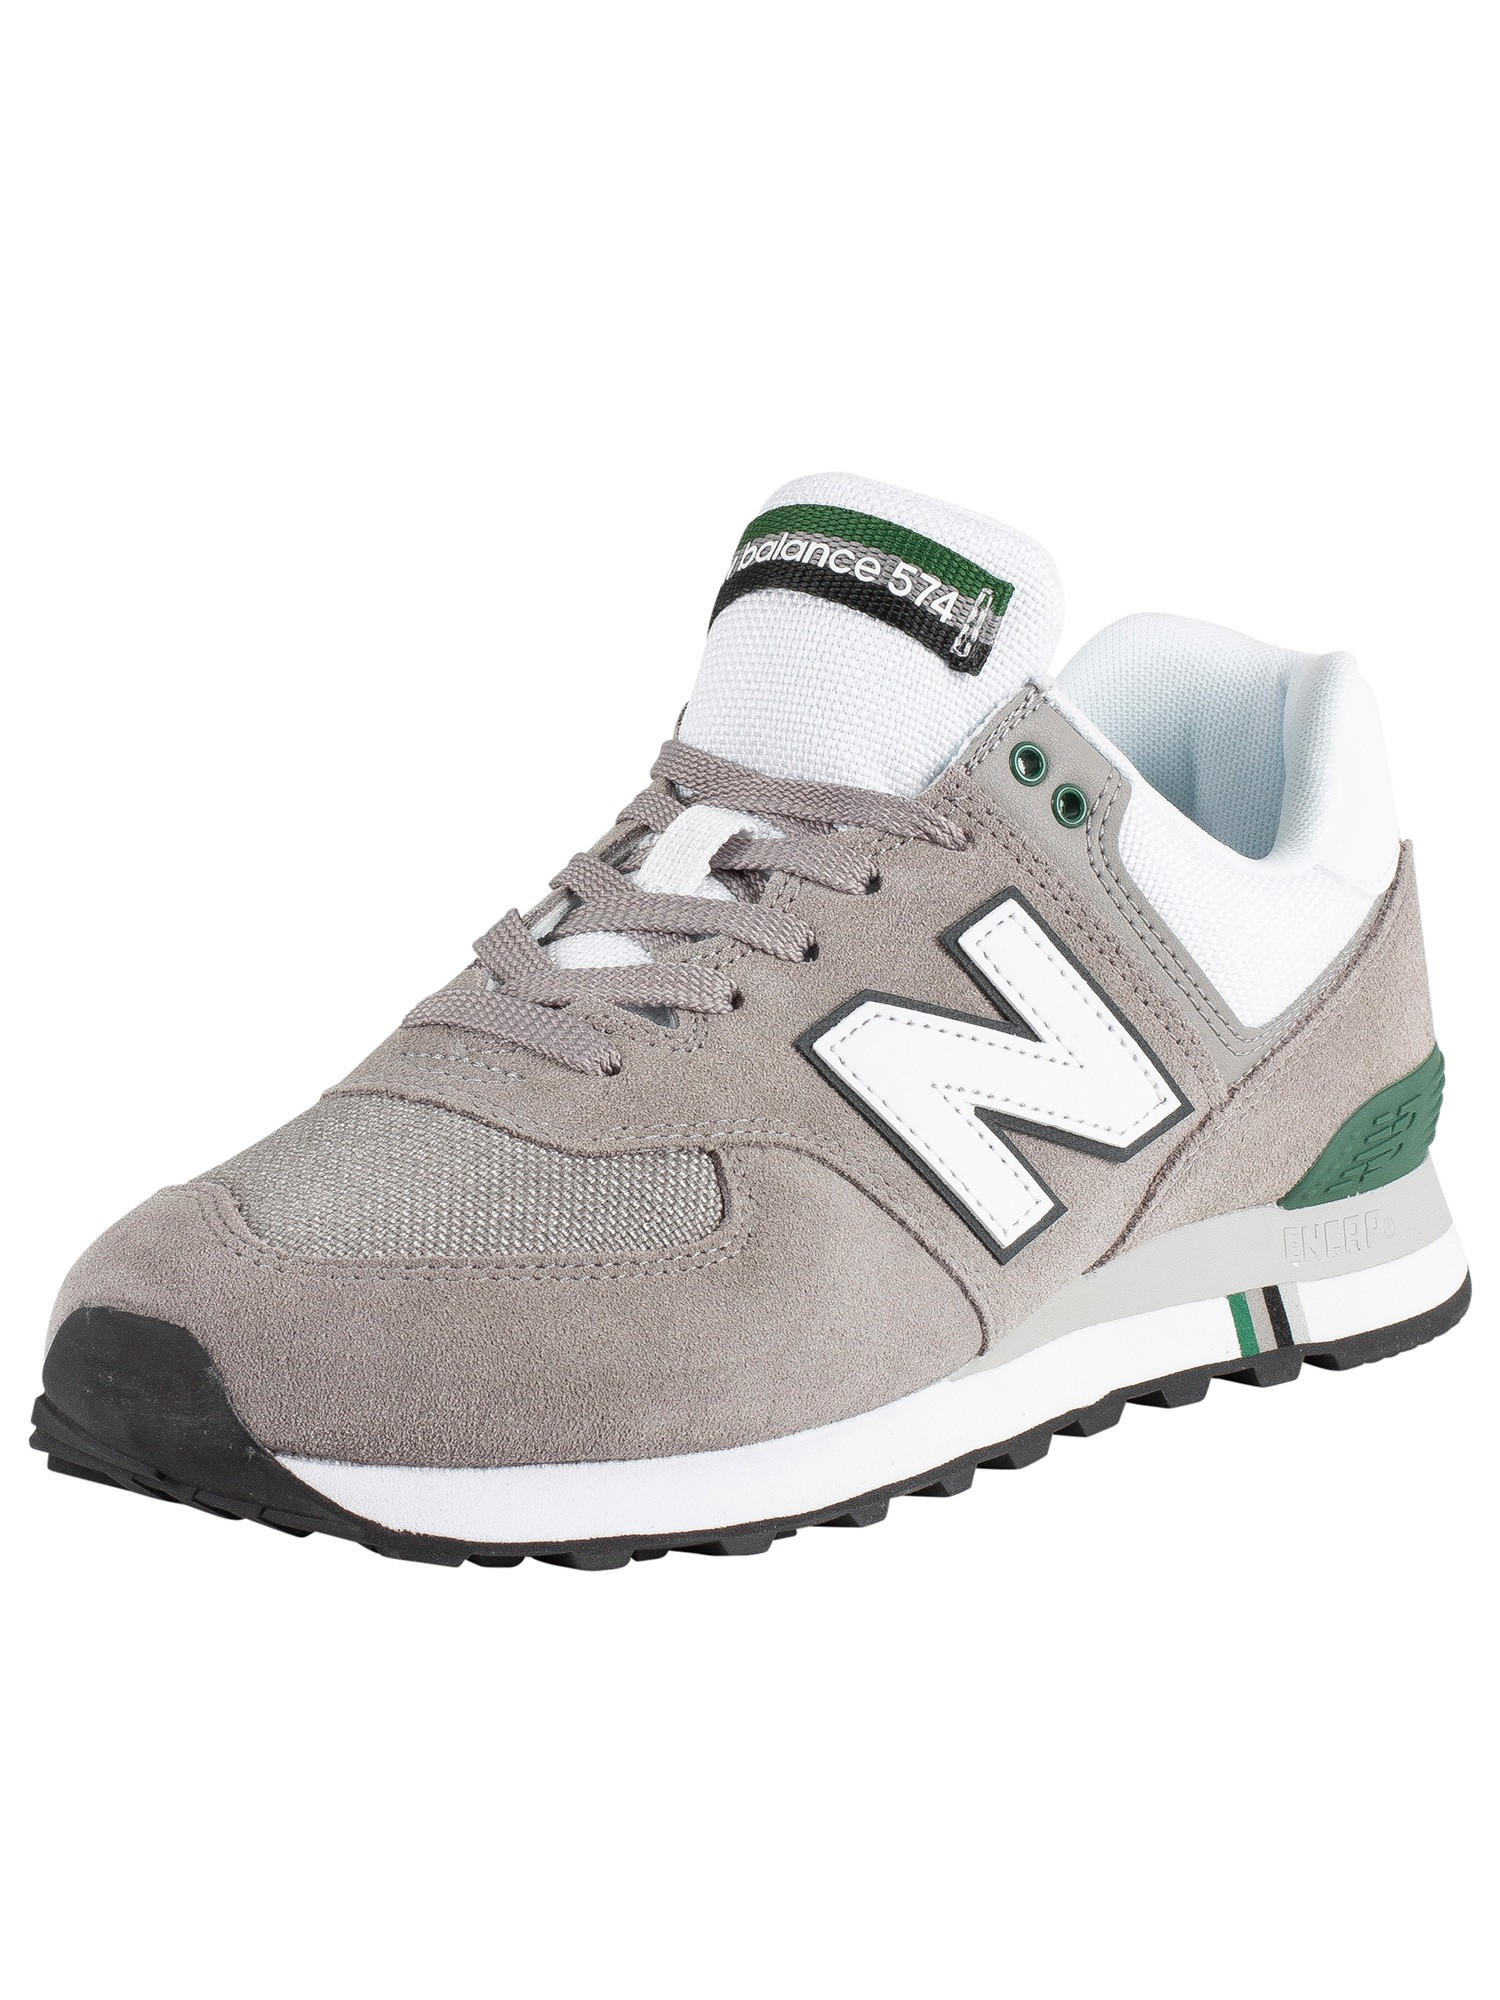 cheap for discount 0bccb 239cf New Balance 574 Suede Trainers - Grey/White